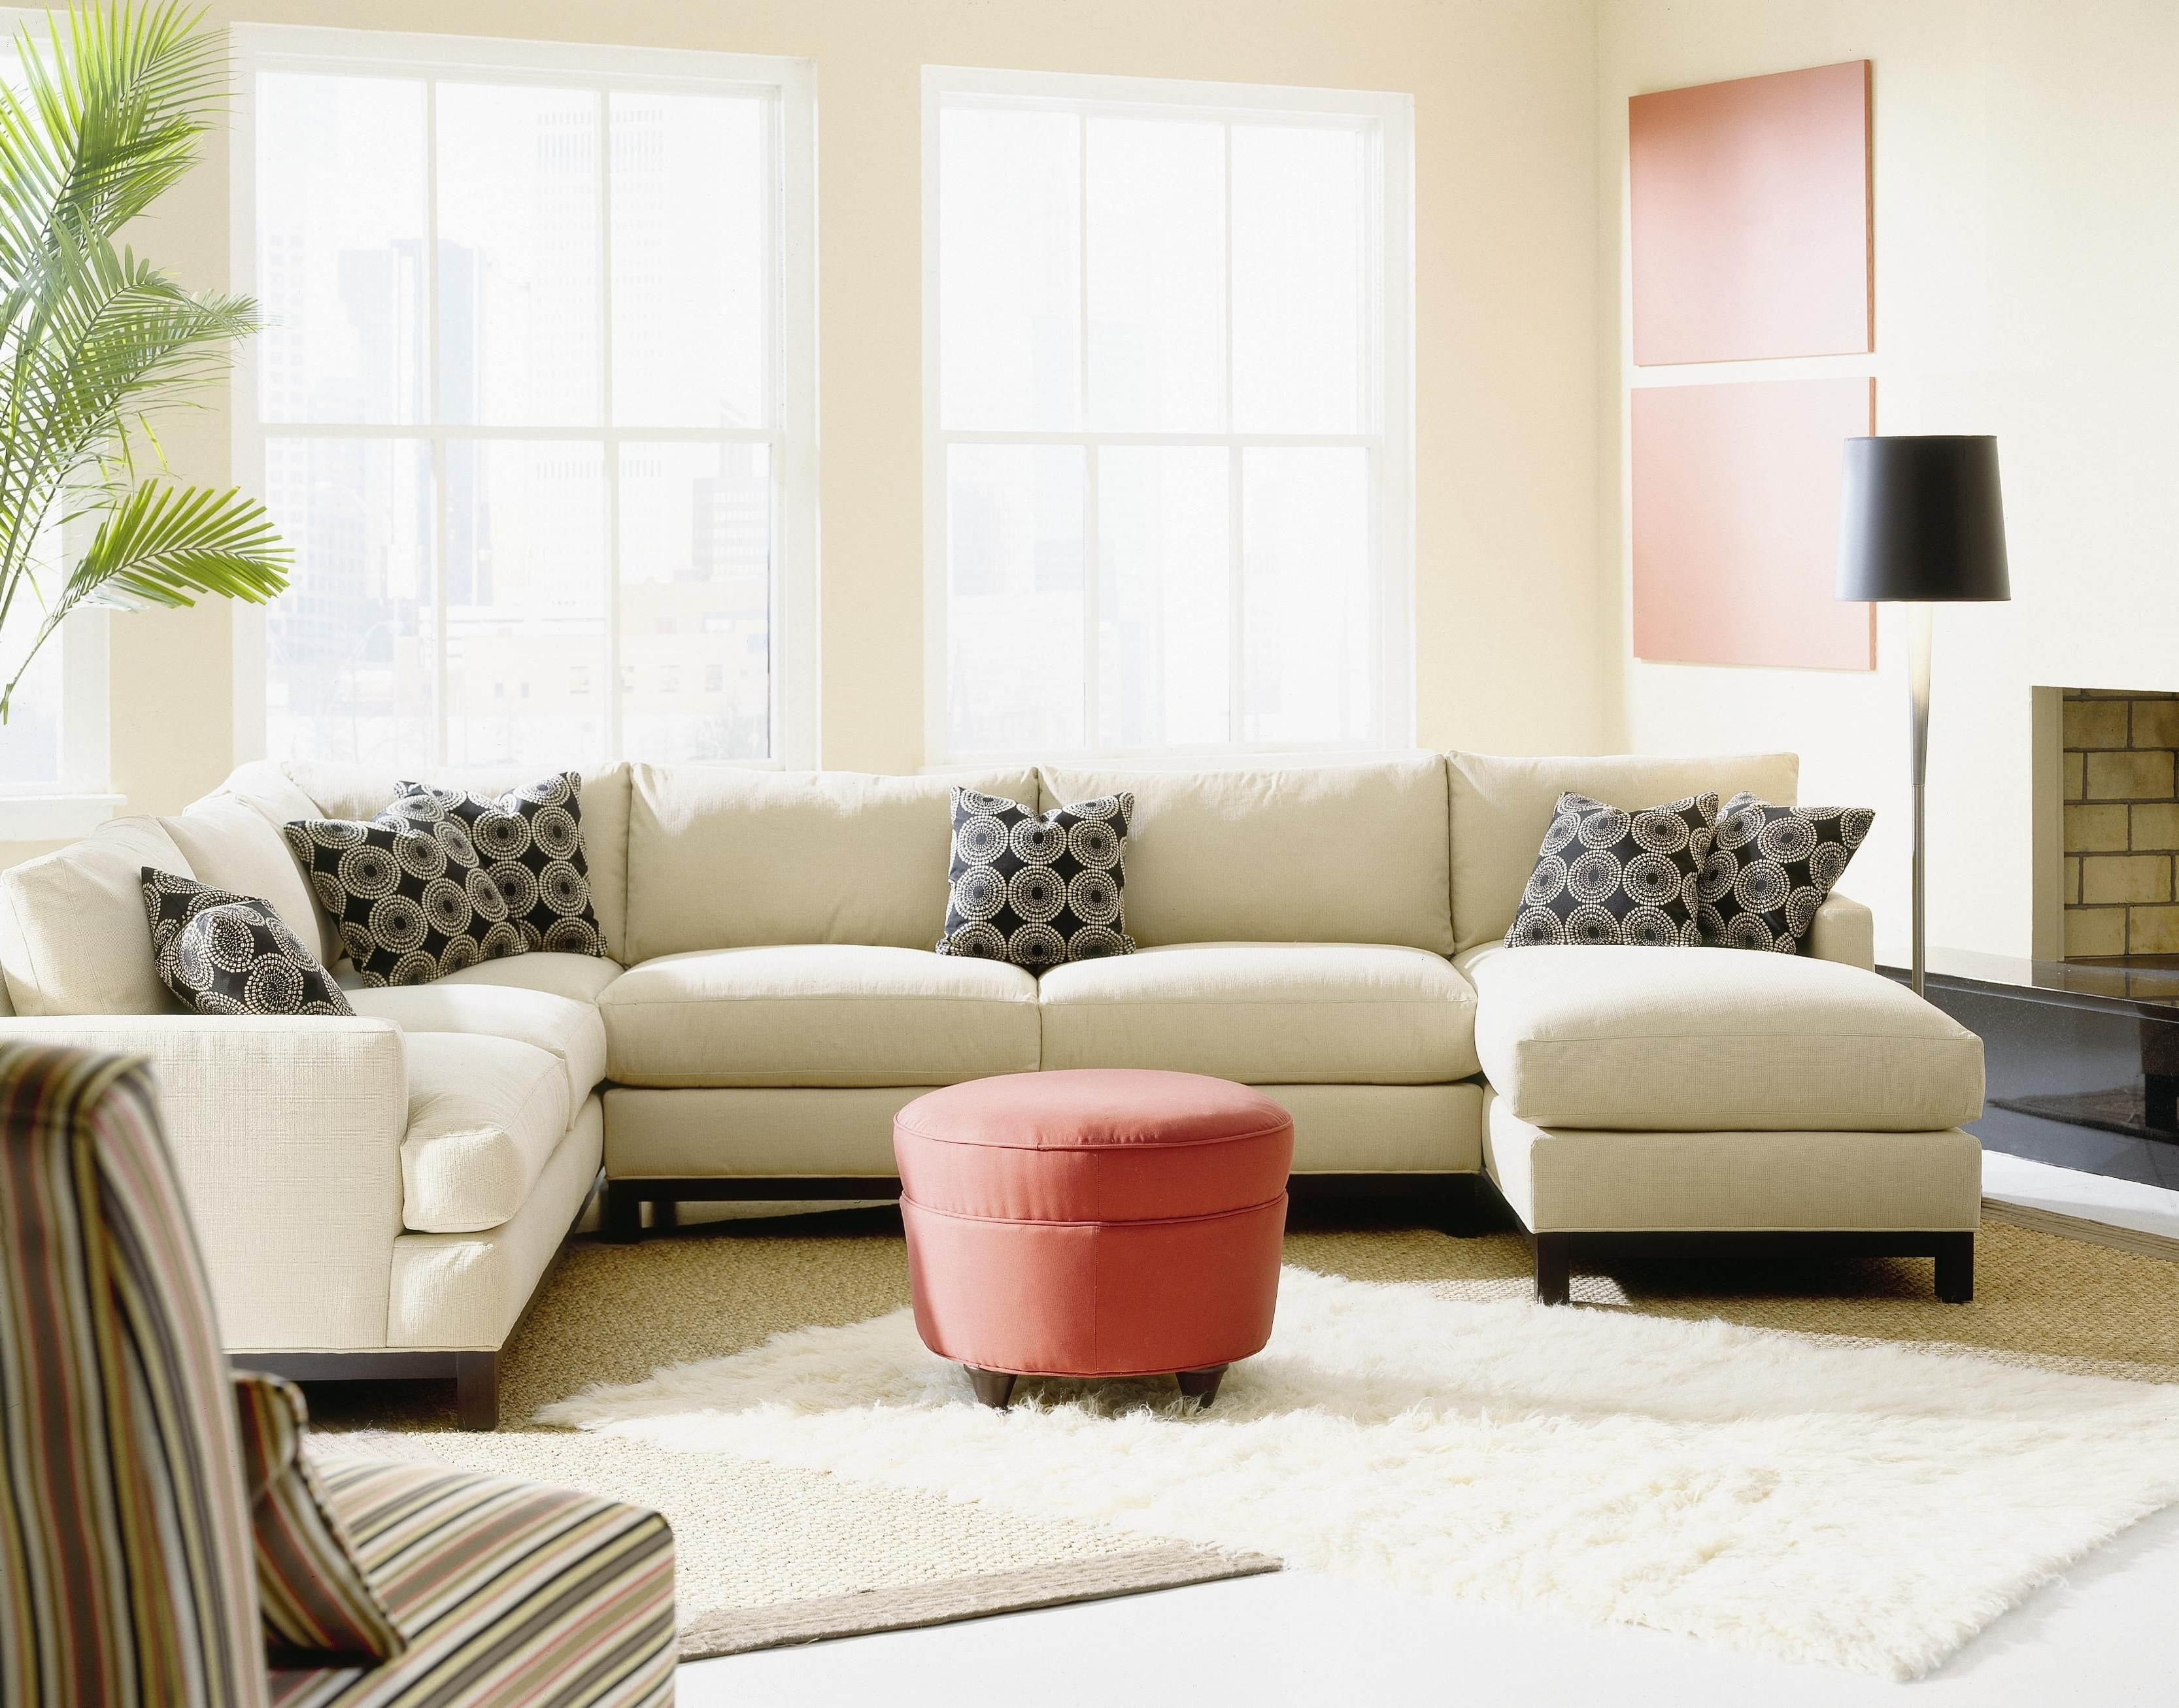 2019 Crisp Contemporary Modular Sectional Sofa Can Be Rearranged To Fit Pertaining To Sectional Sofas That Can Be Rearranged (View 4 of 20)